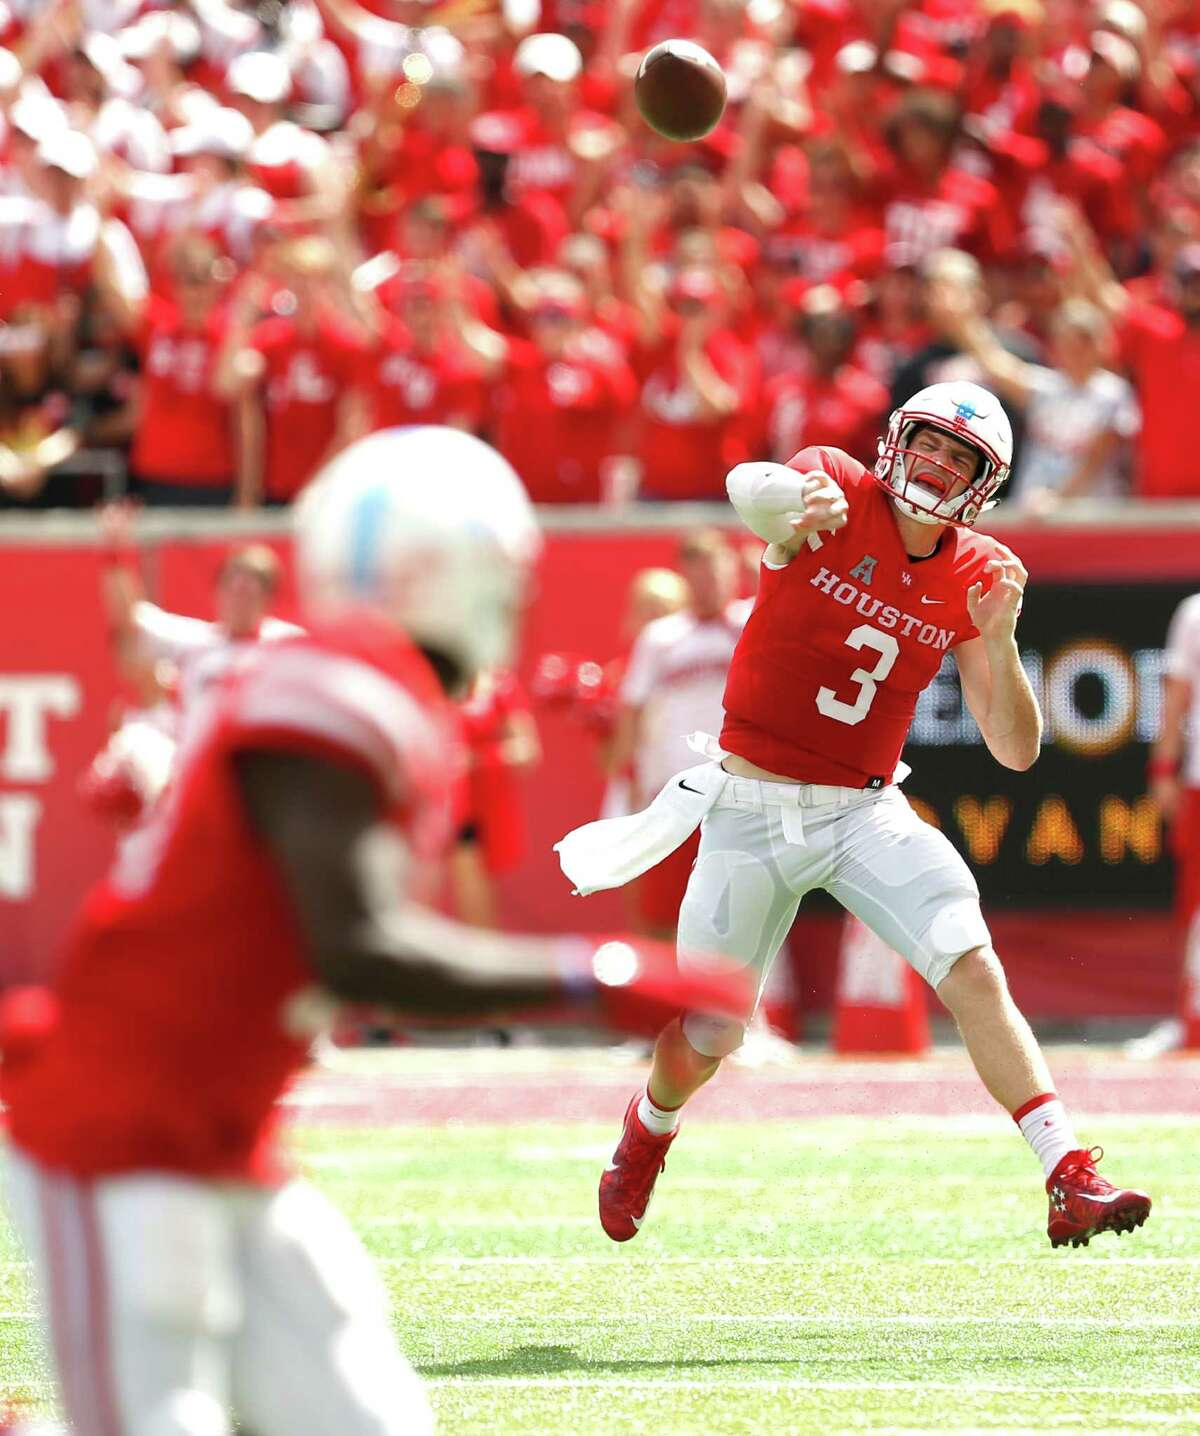 Houston quarterback Kyle Postma (3) throws a pass to wide receiver Linell Bonner (15) during the first quarter of an NCAA football game against Lamar at TDECU Stadium on Saturday, Sept. 10, 2016, in Houston.